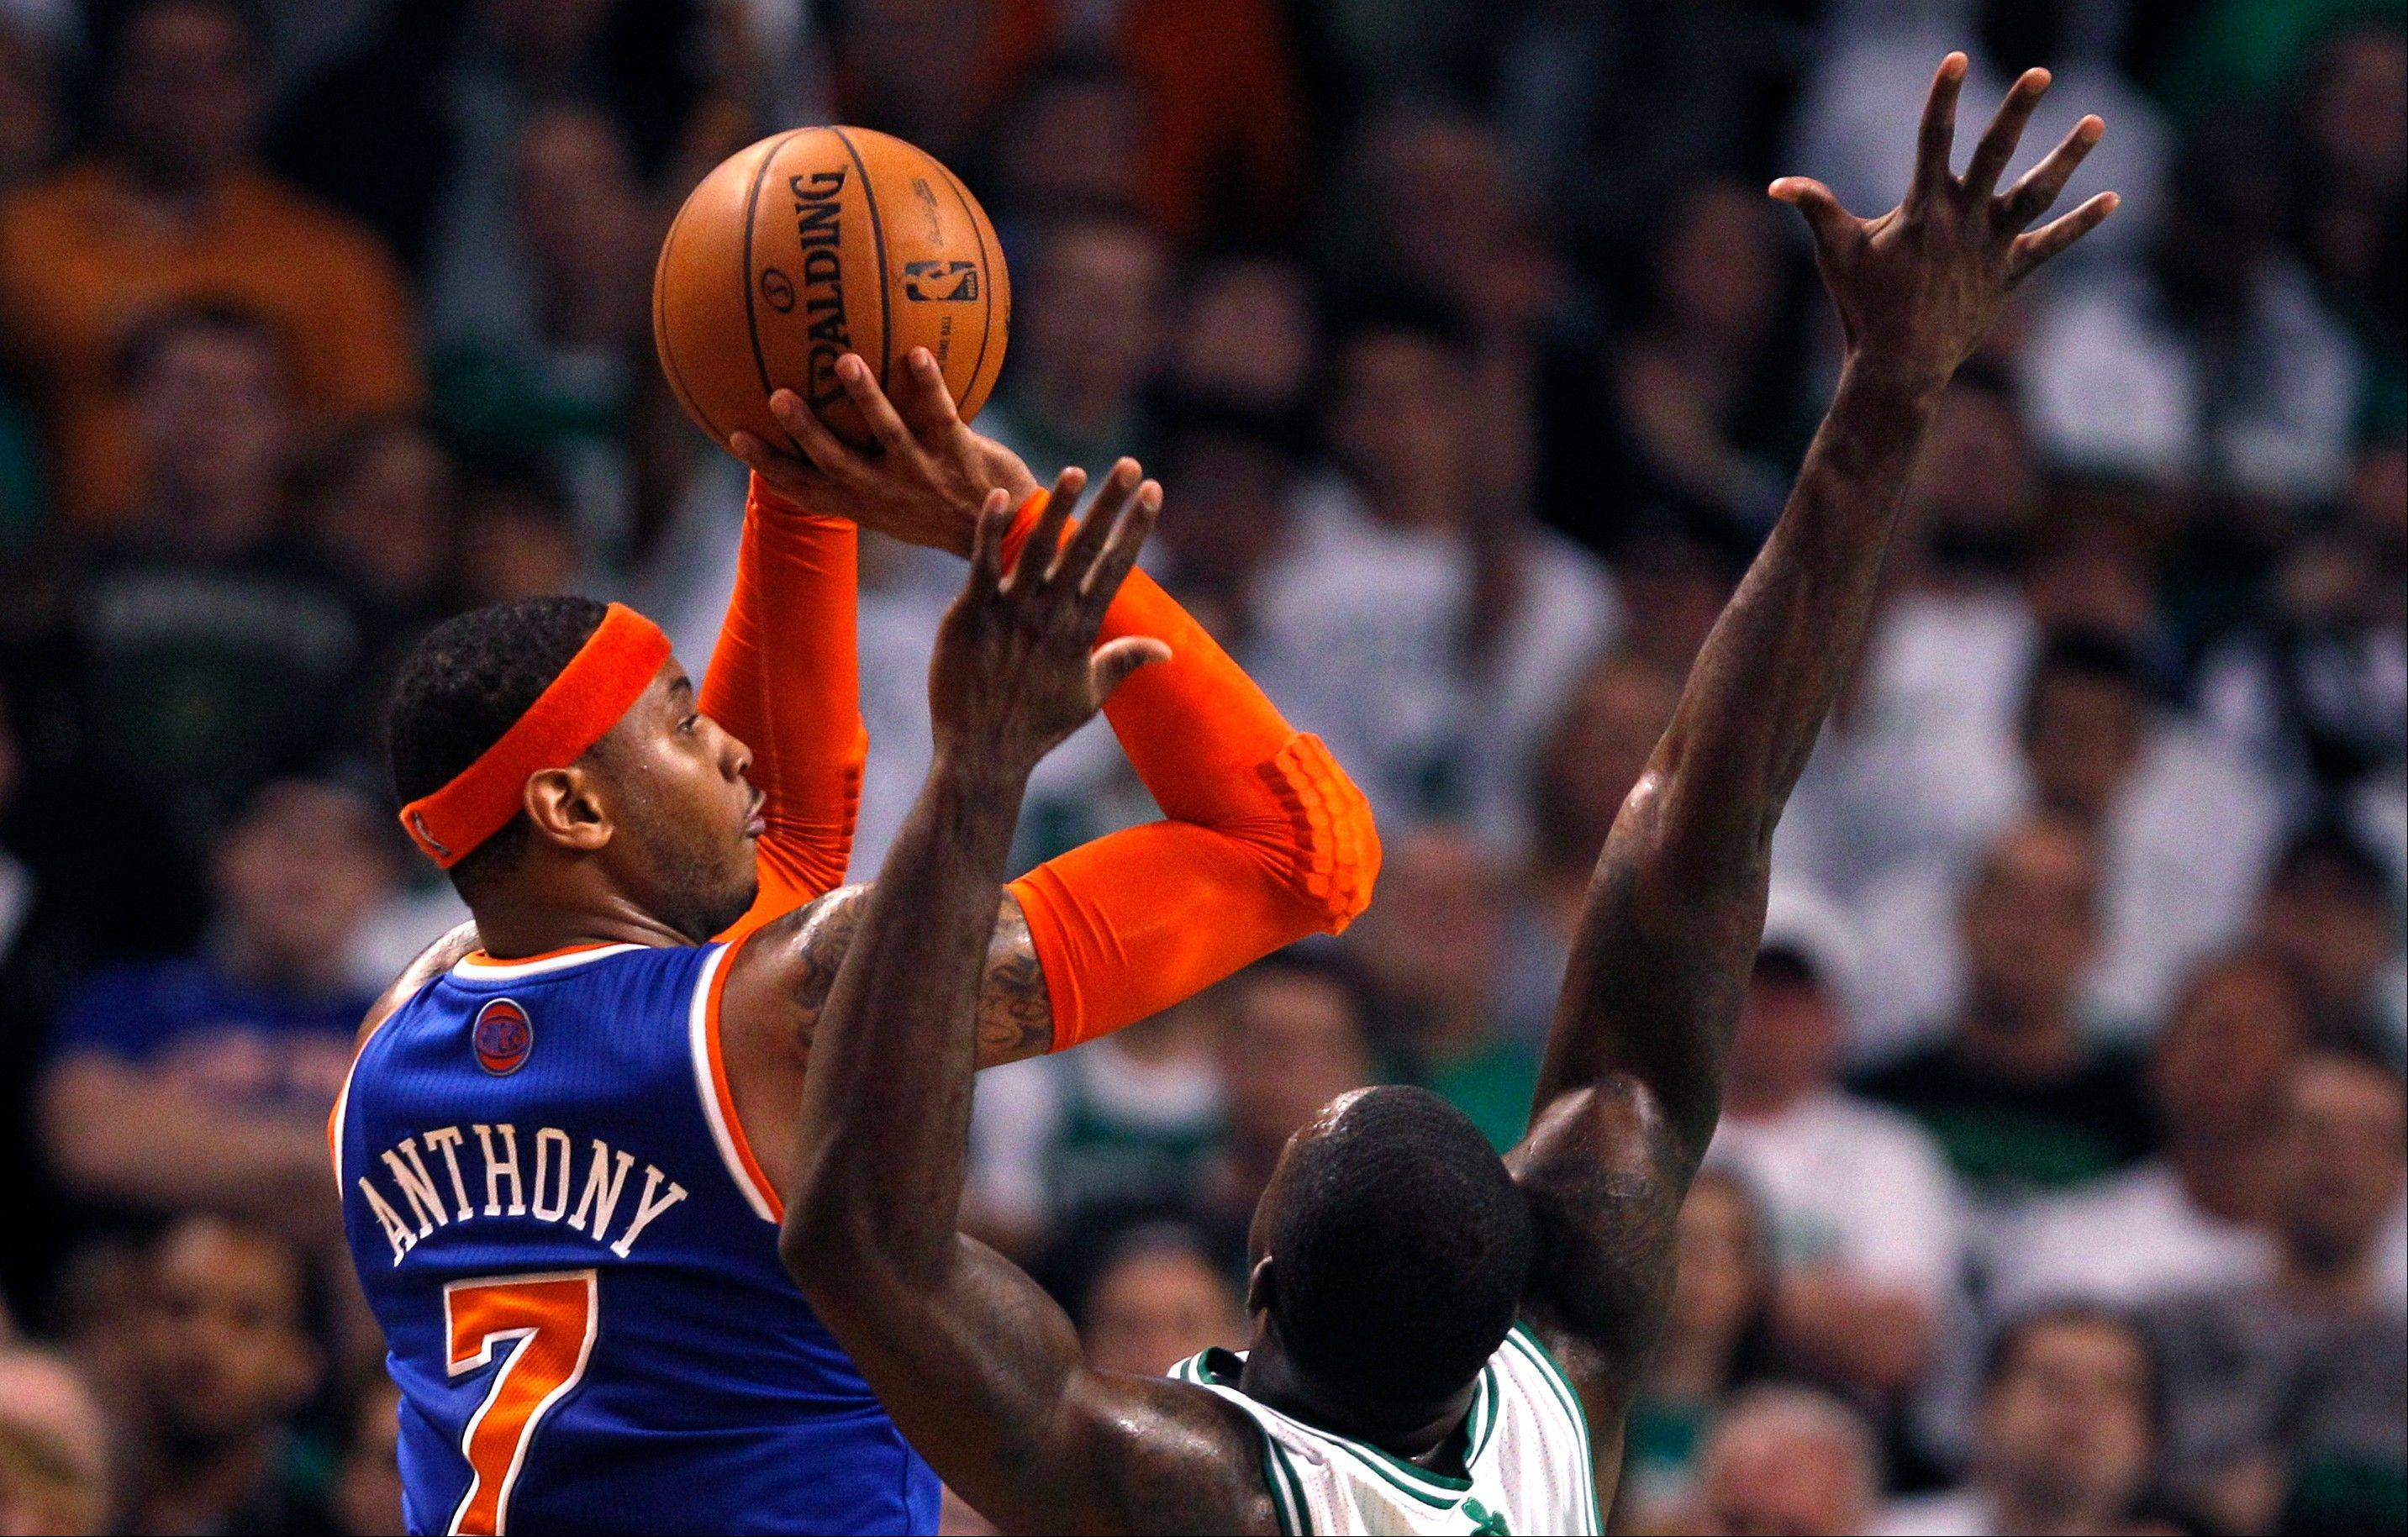 New York Knicks forward Carmelo Anthony (7) shoots over Boston Celtics forward Jeff Green during the second quarter in Game 6 of their first-round NBA basketball playoff series in Boston, Friday, May 3, 2013.